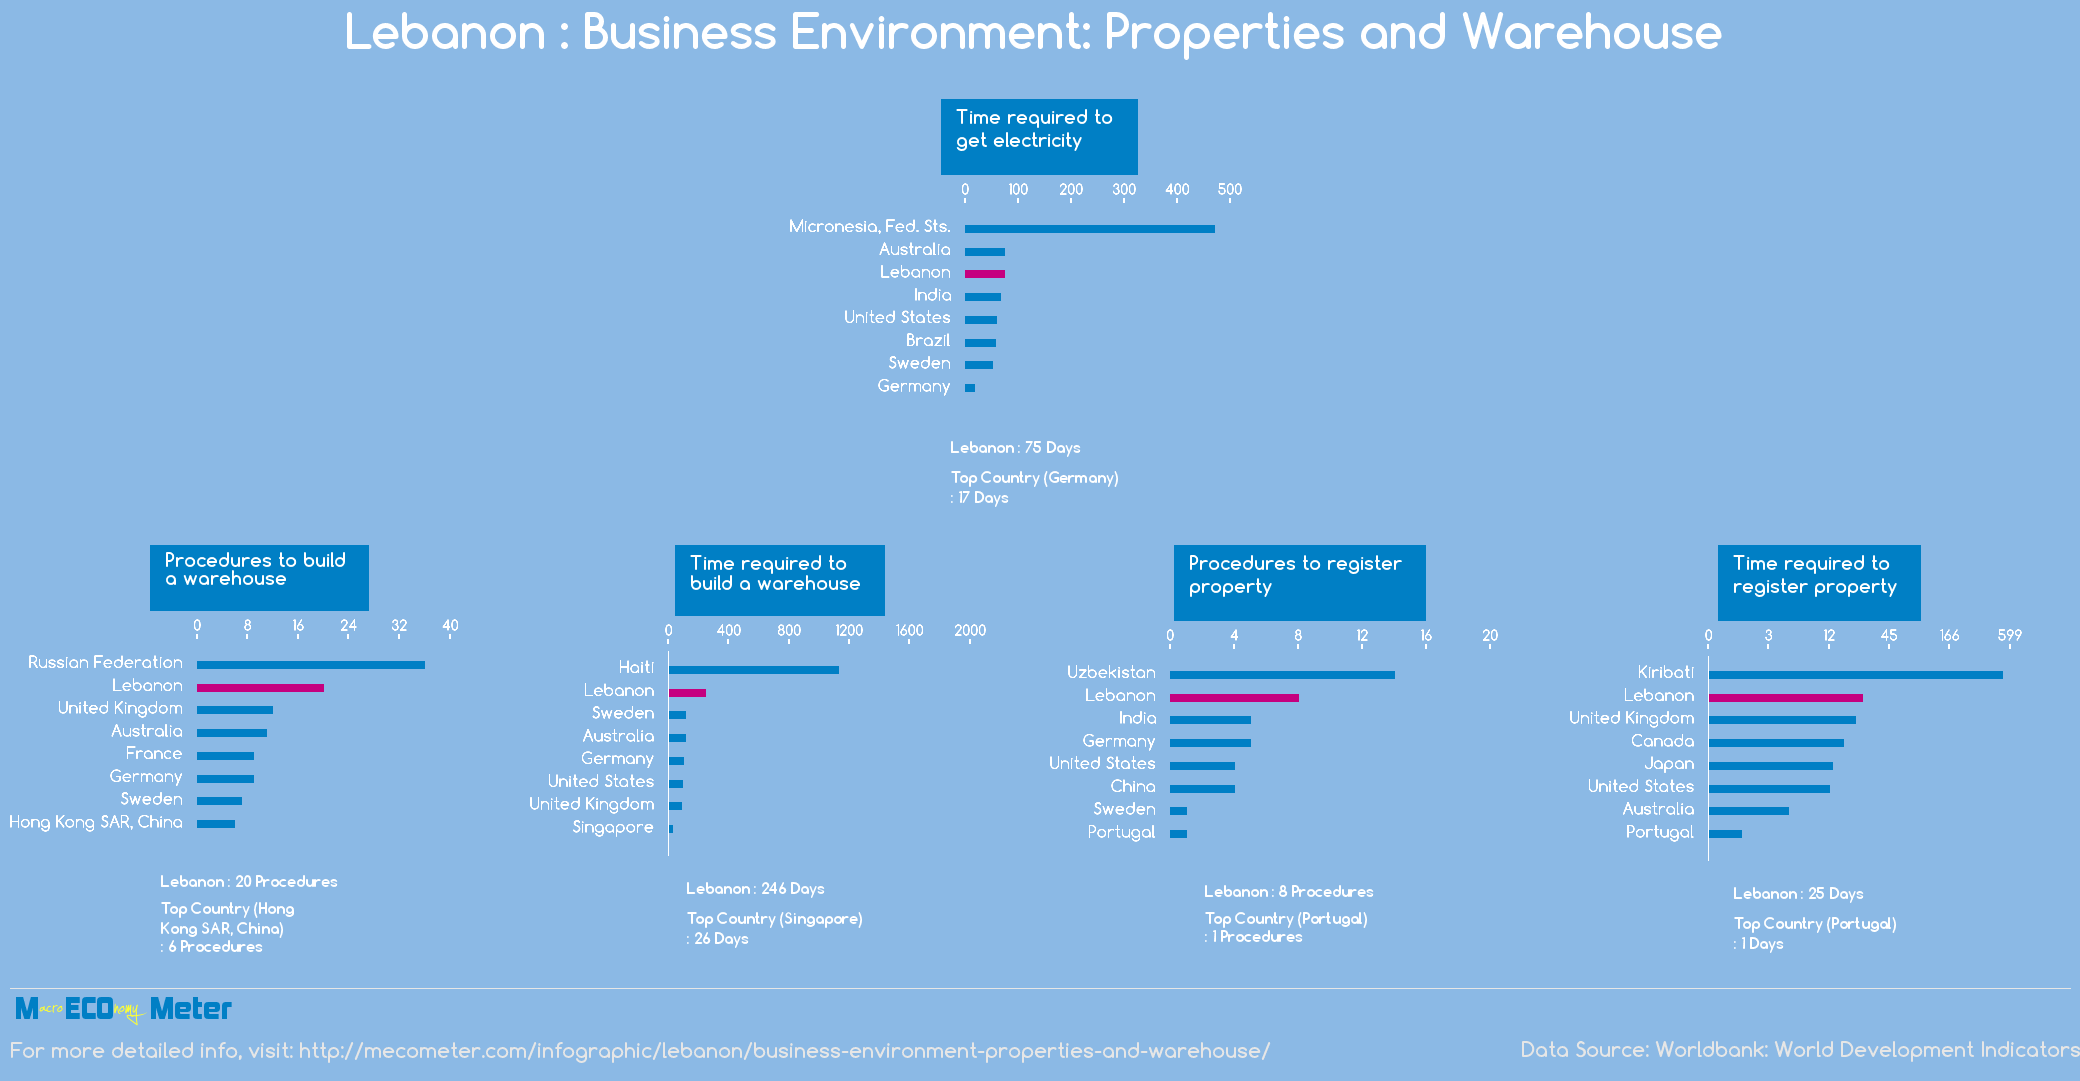 Lebanon : Business Environment: Properties and Warehouse